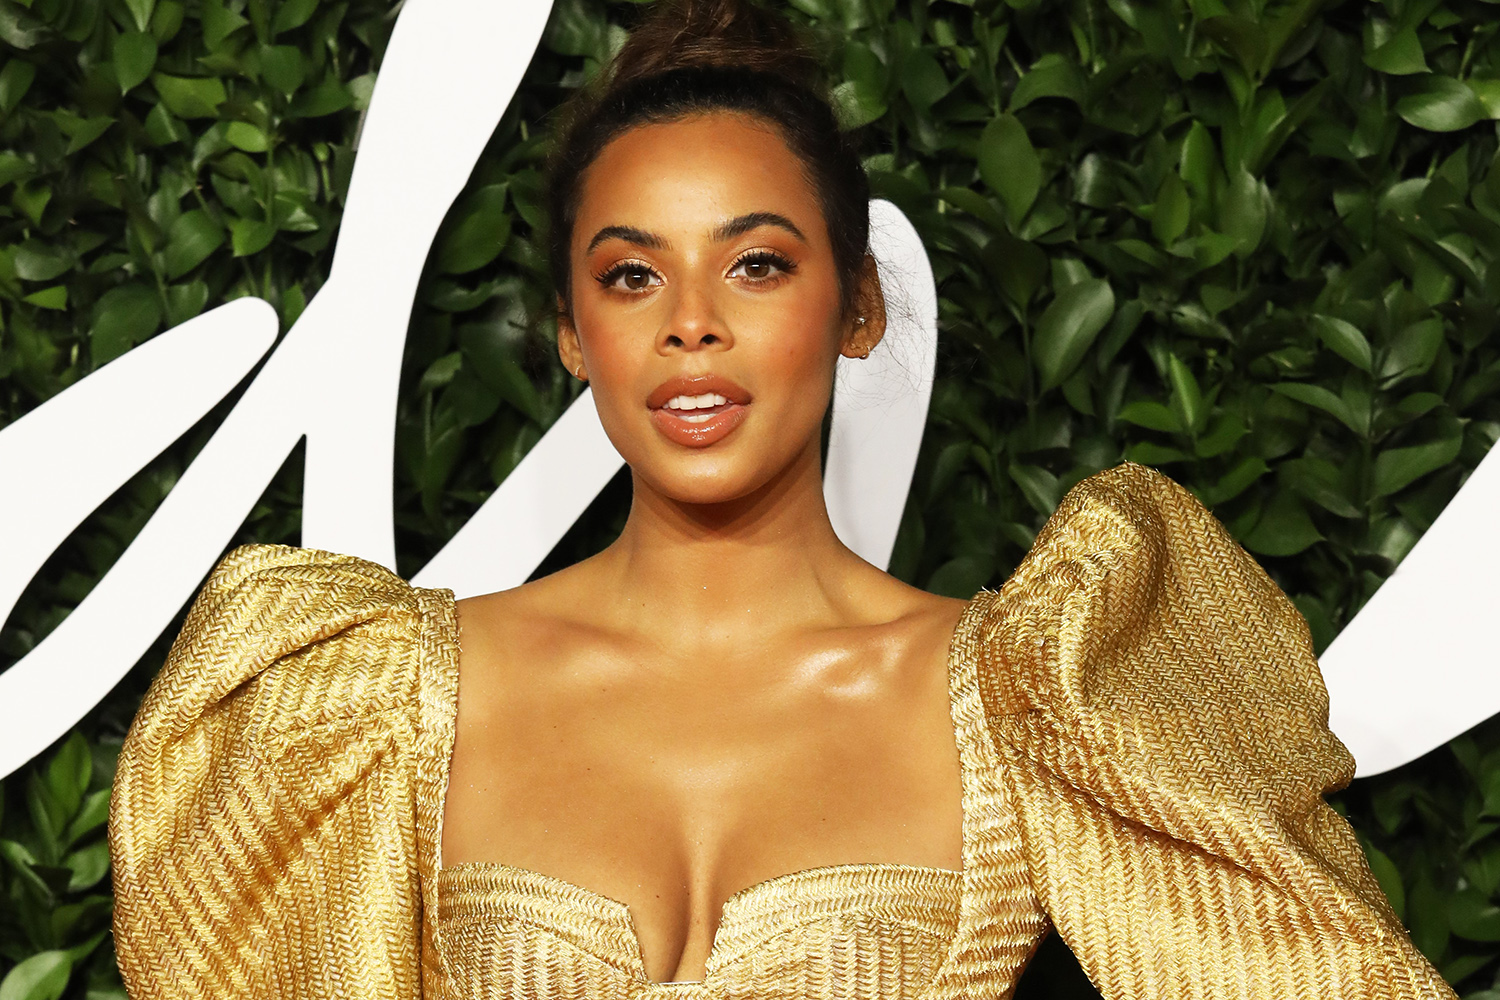 Rochelle Humes wows fans as she shows off daughter's beautiful bedroom